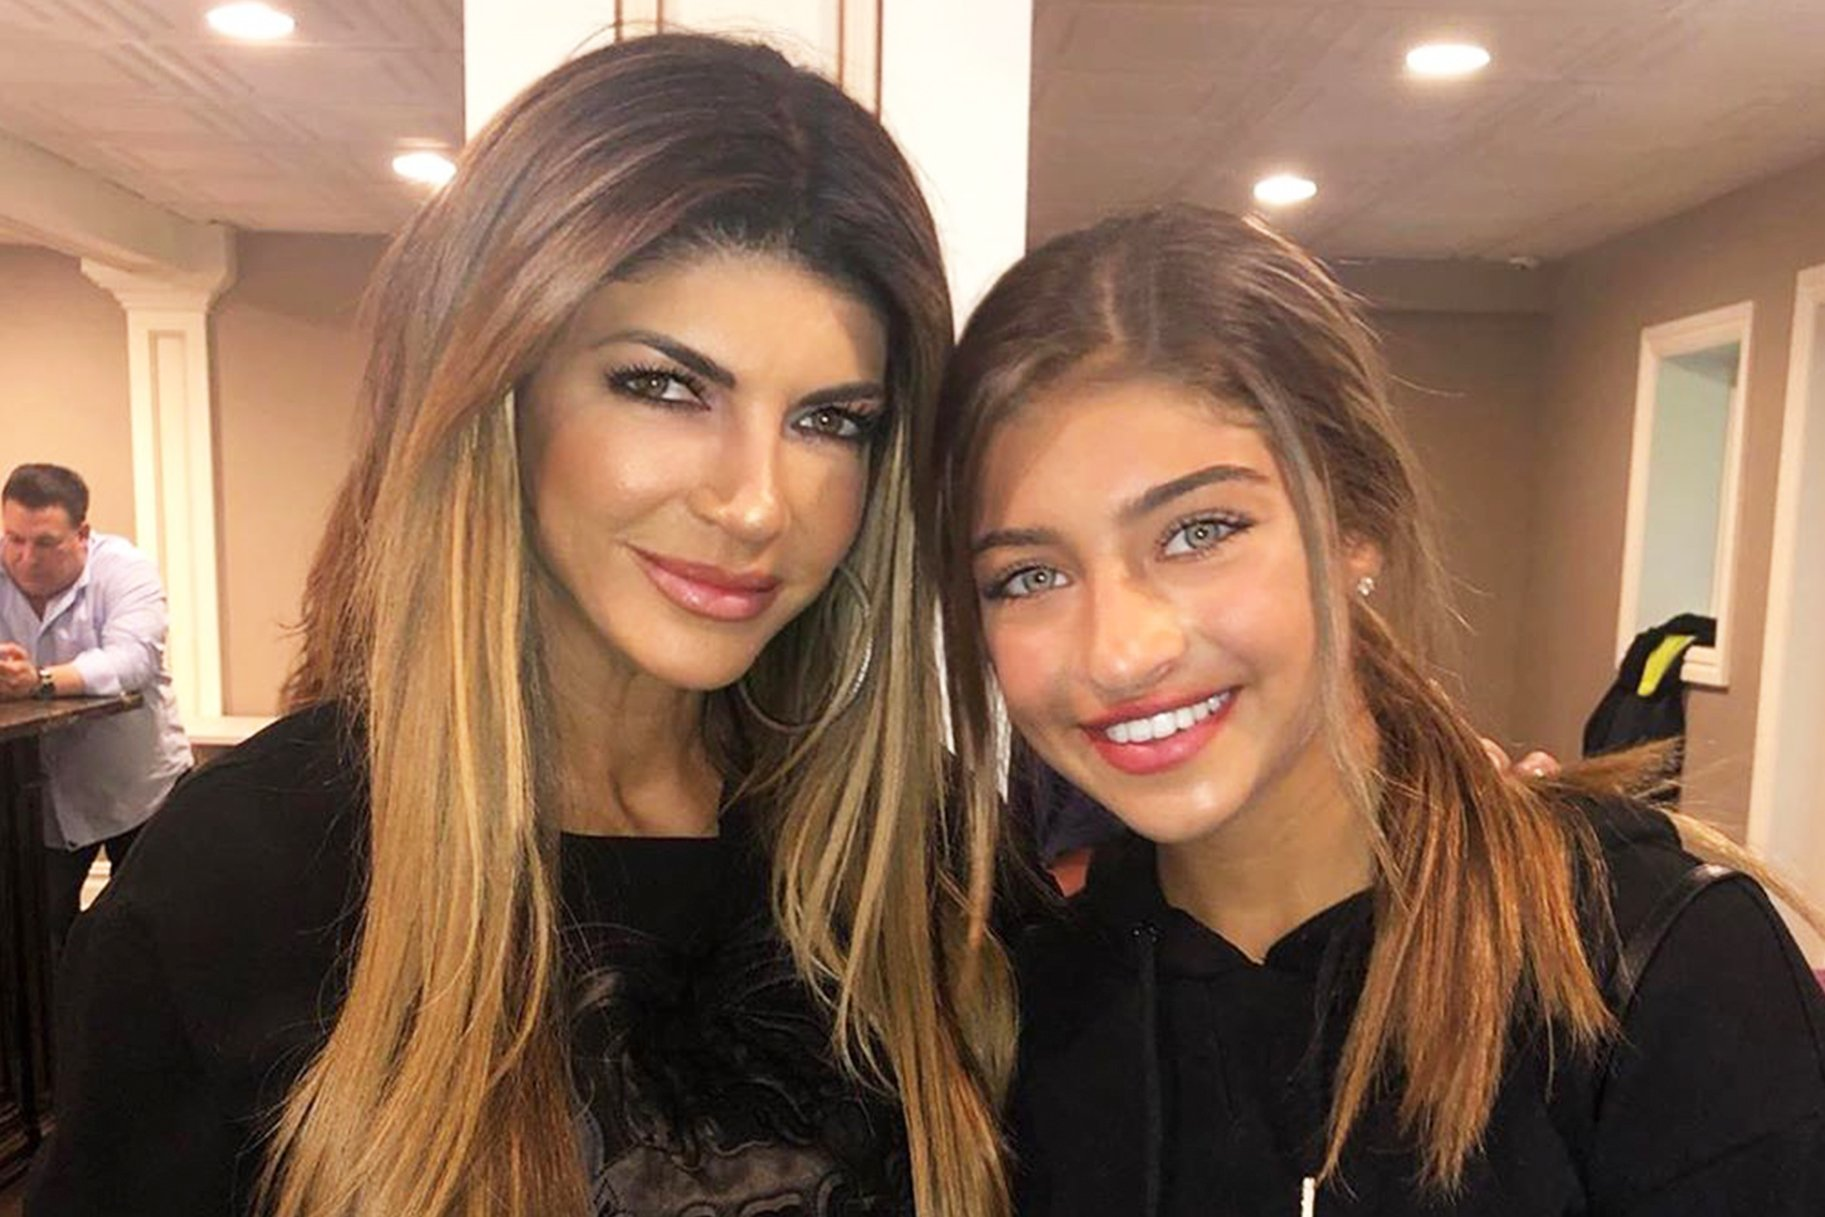 Teresa Guidice Reacts To Her Daughter Gia Having A New Boyfriend!